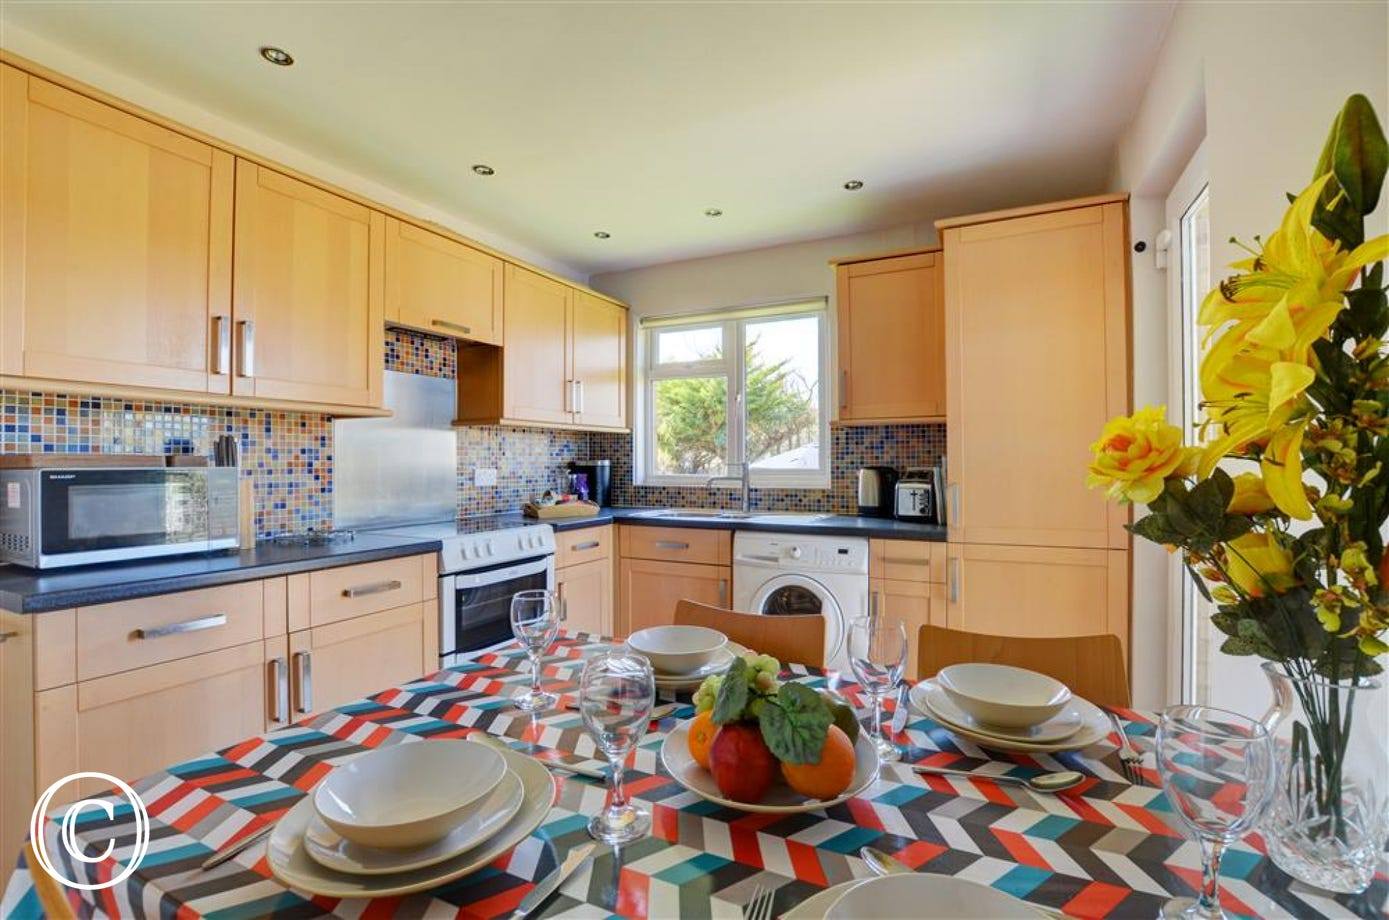 Well equipped kitchen to prepare that special family meal or a quick breakfast to set you up for the day